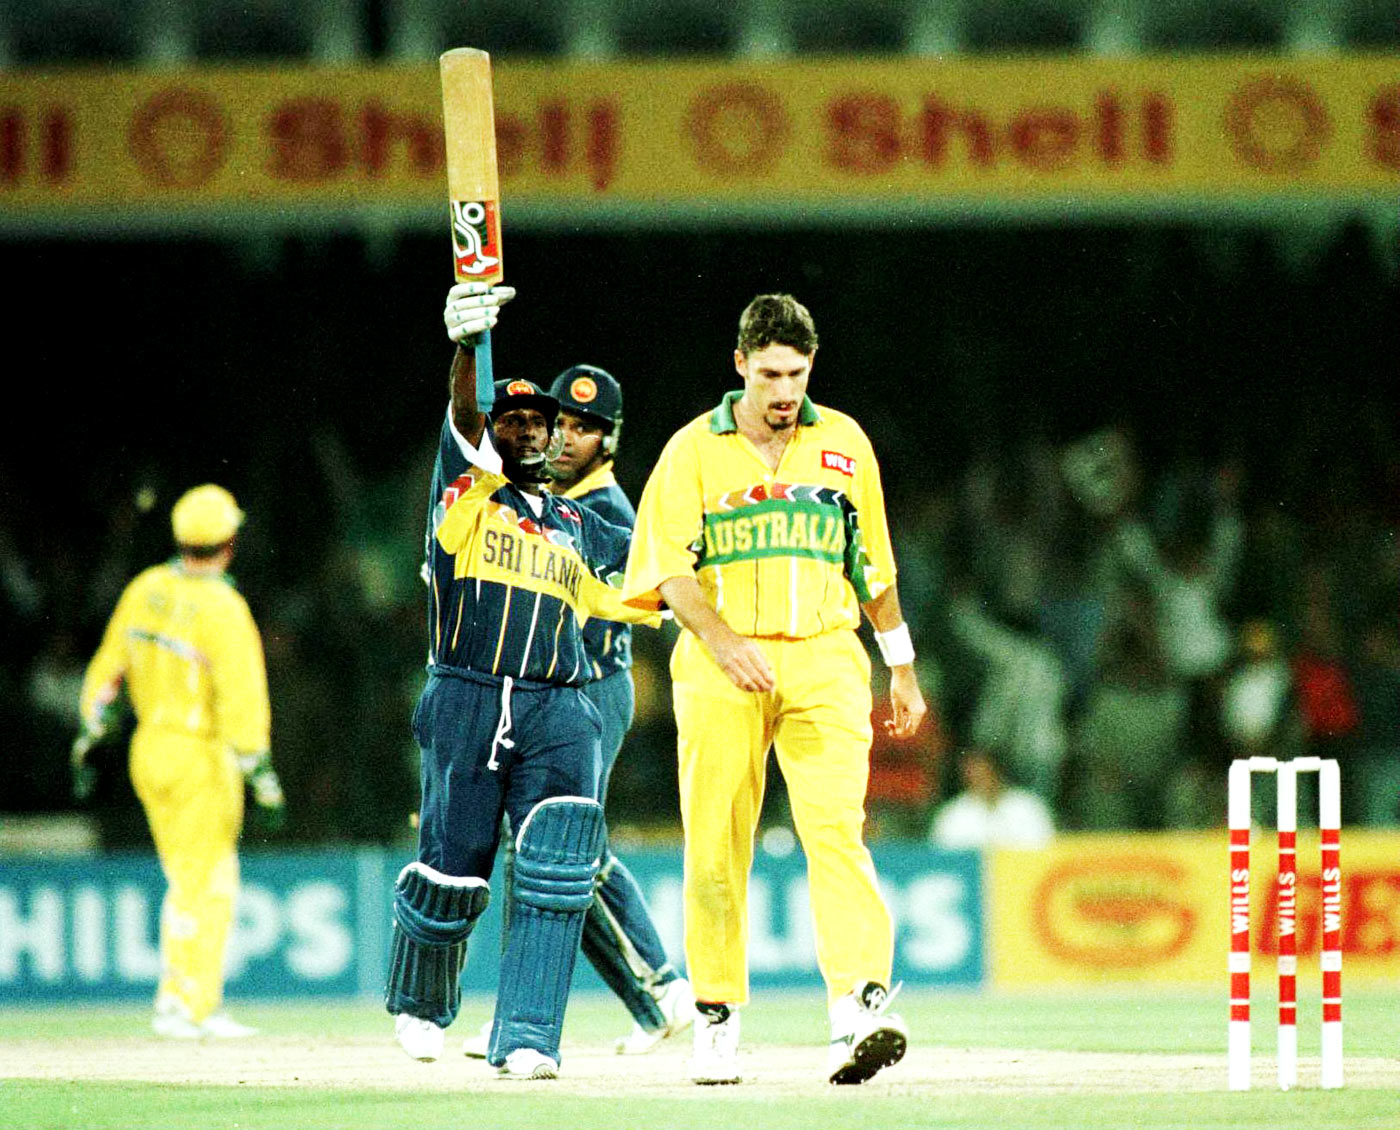 Big day, big feats: Aravinda de Silva was relaxed enough to contribute match-winning efforts with bat and ball in the 1996 World Cup final